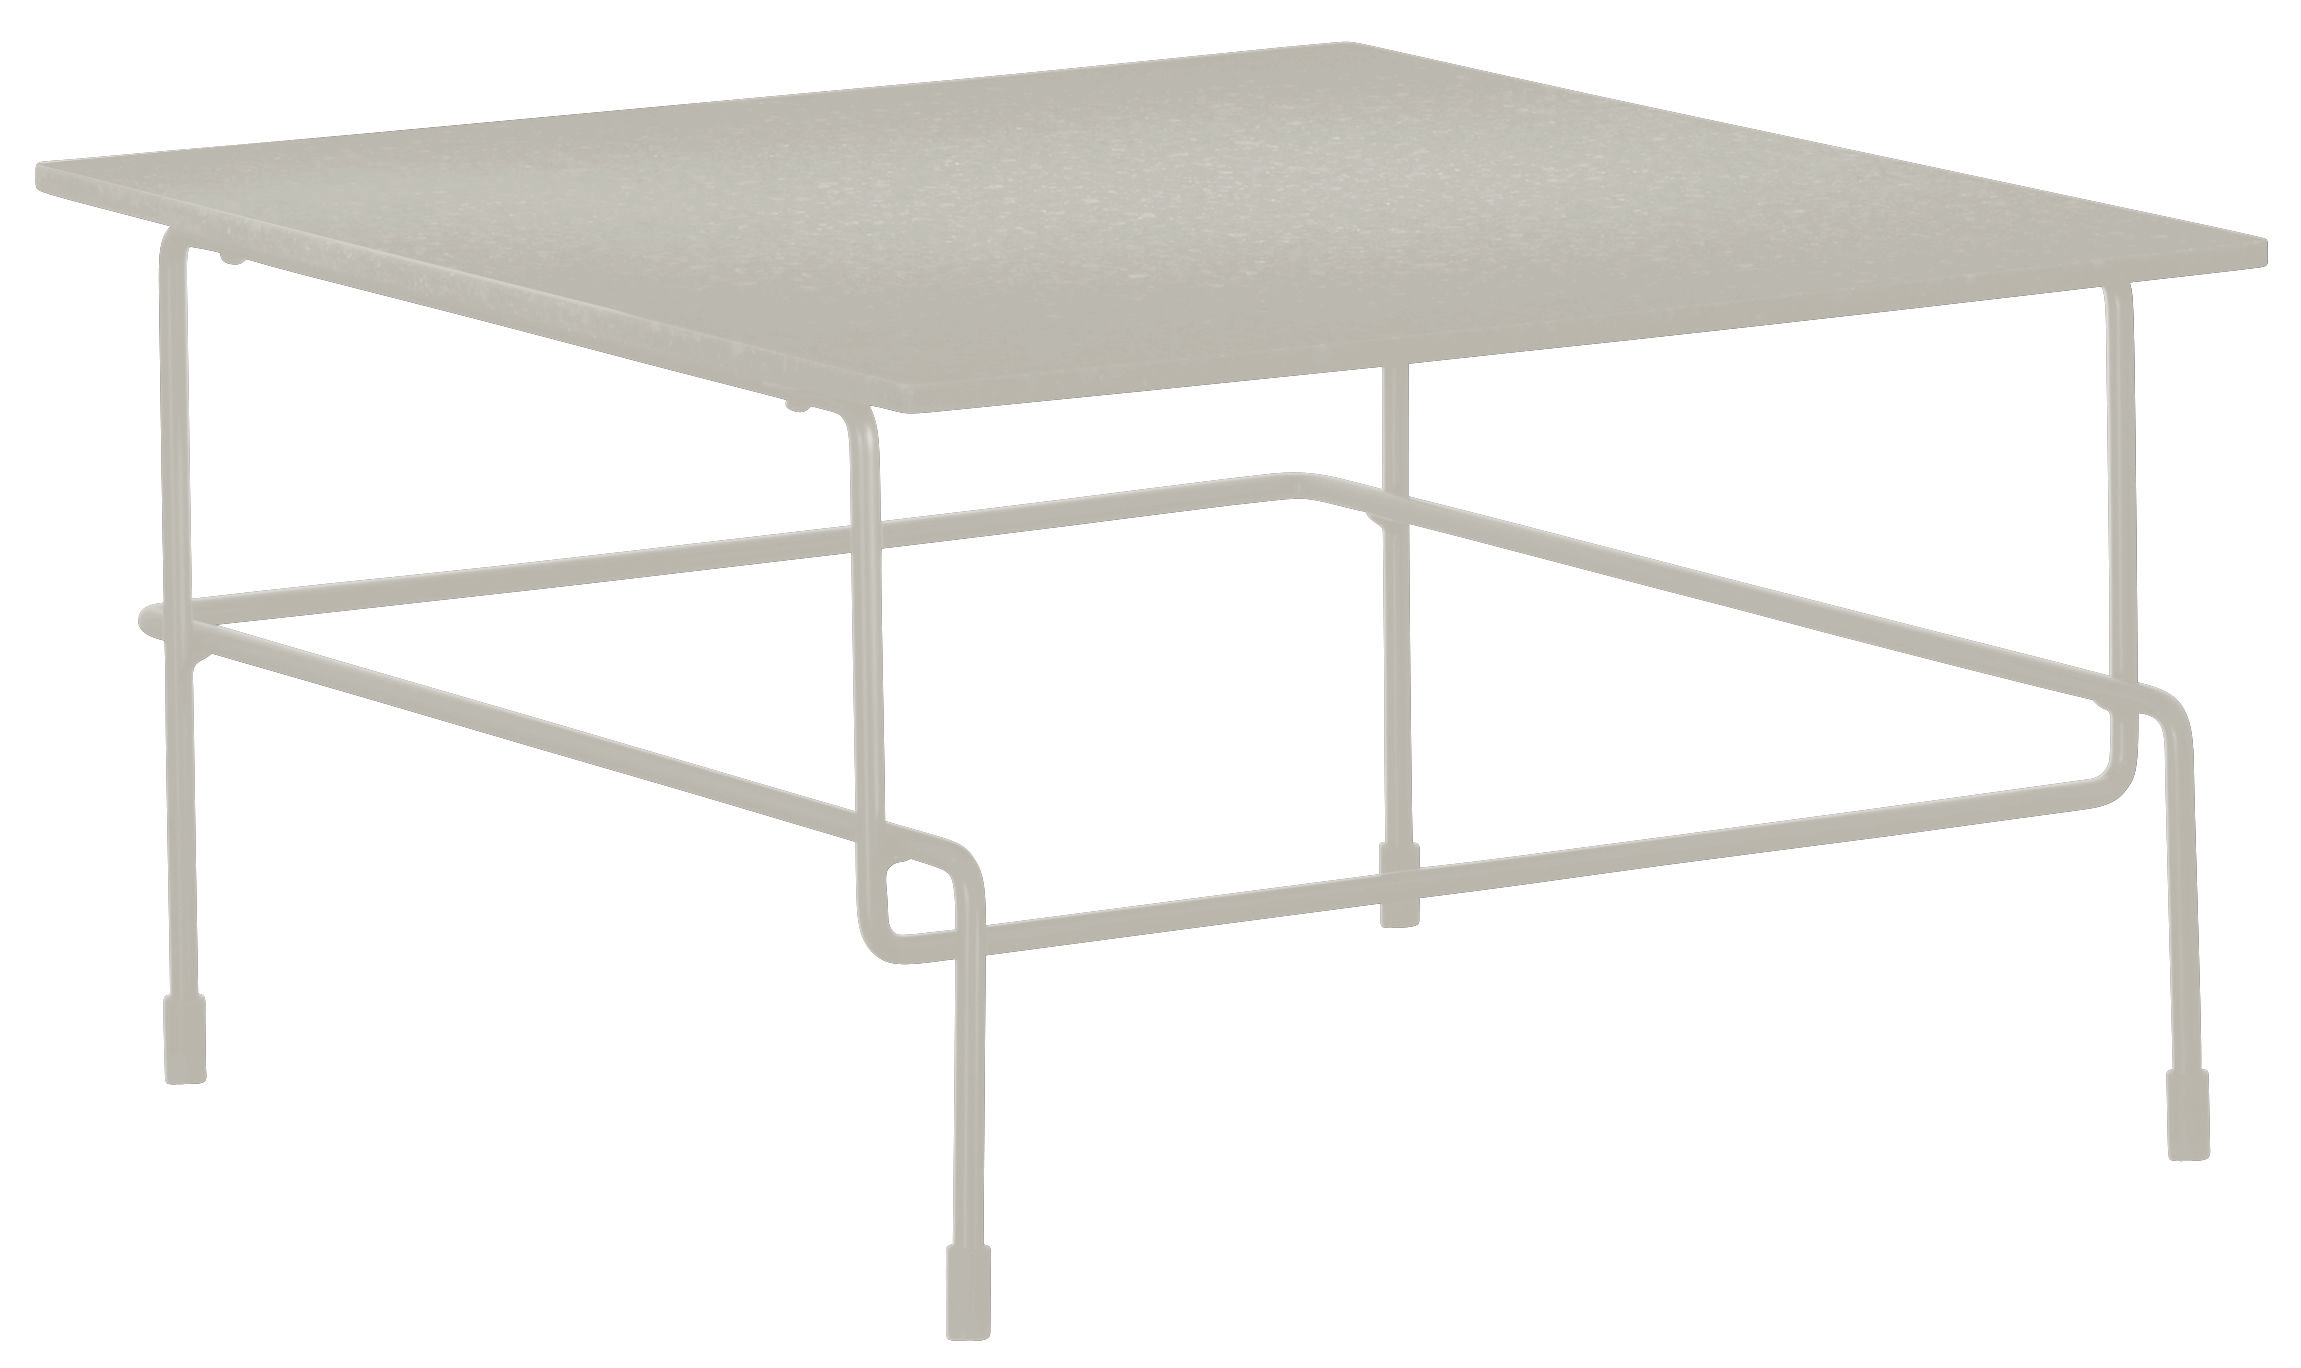 Furniture - Coffee Tables - Traffic Coffee table by Magis - White - Acrylic stone, Varnished steel